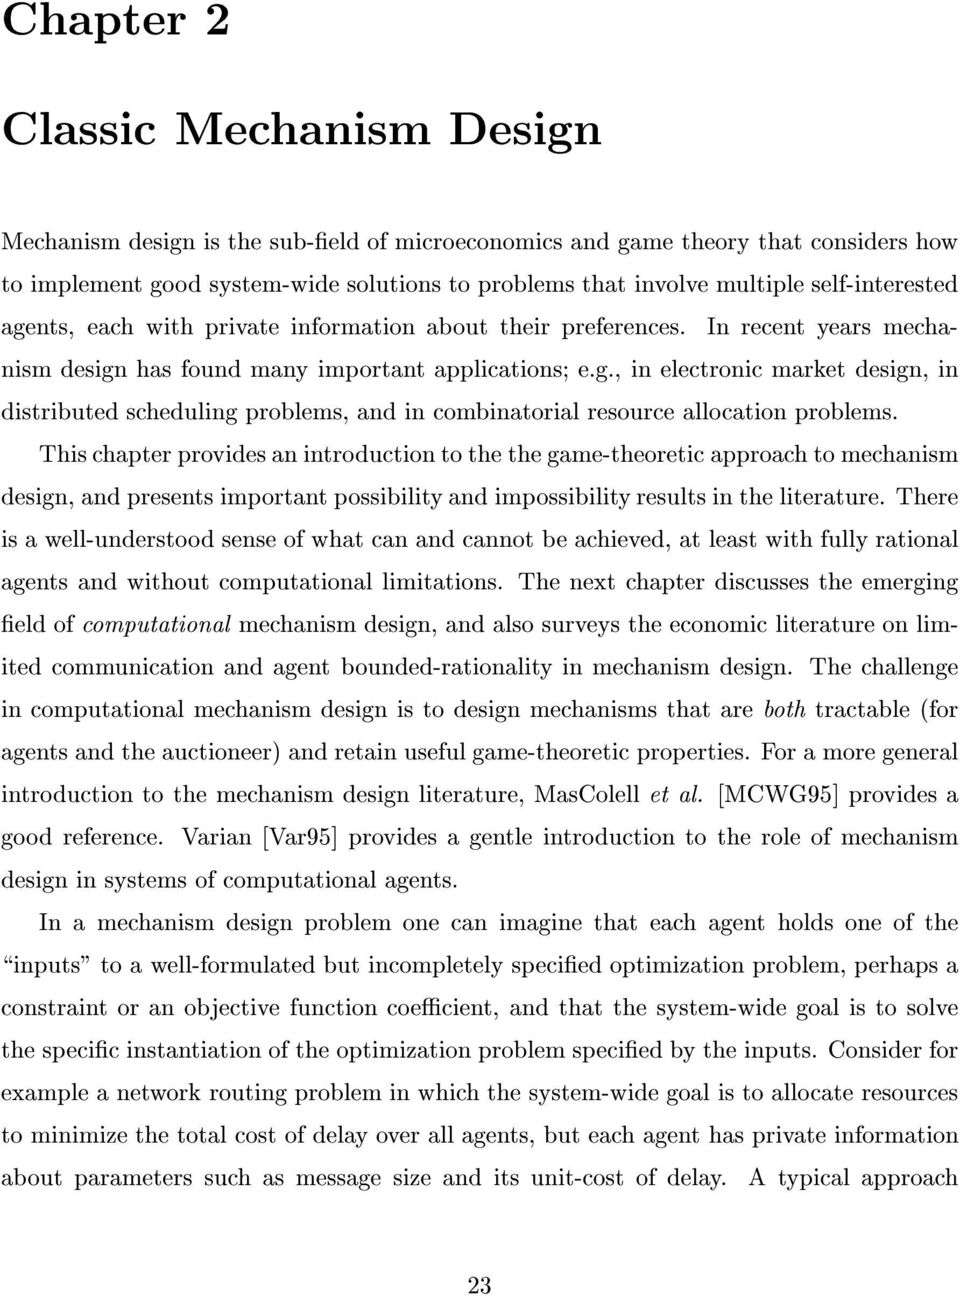 This chapter provides an introduction to the the game-theoretic approach to mechanism design, and presents important possibility and impossibility results in the literature.